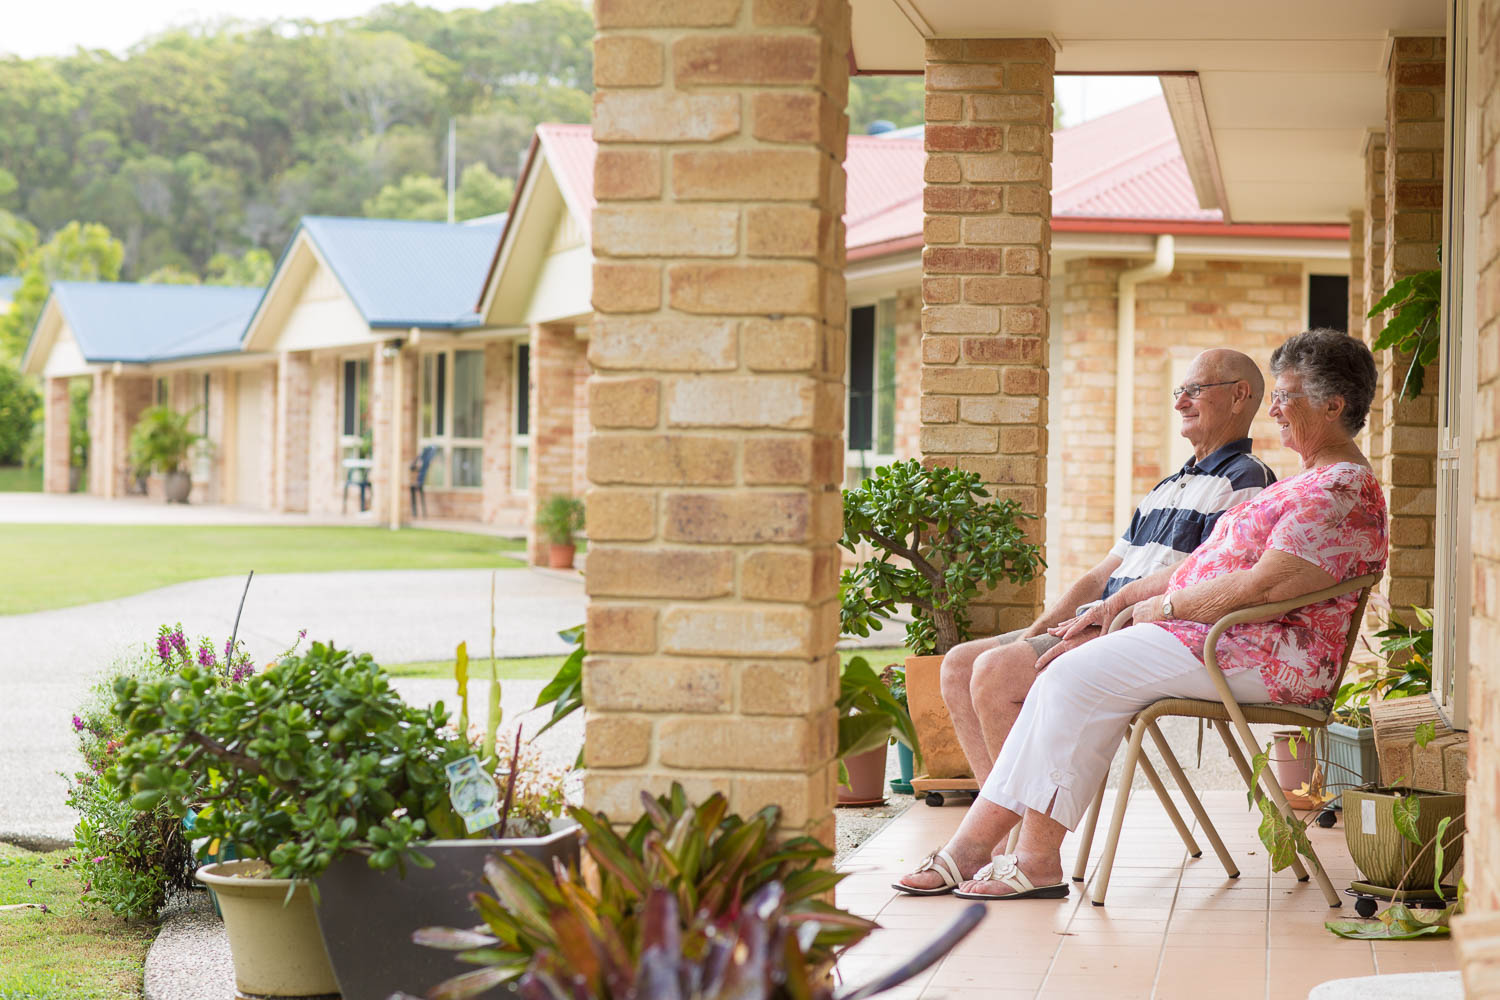 CommercialAgedCare-20